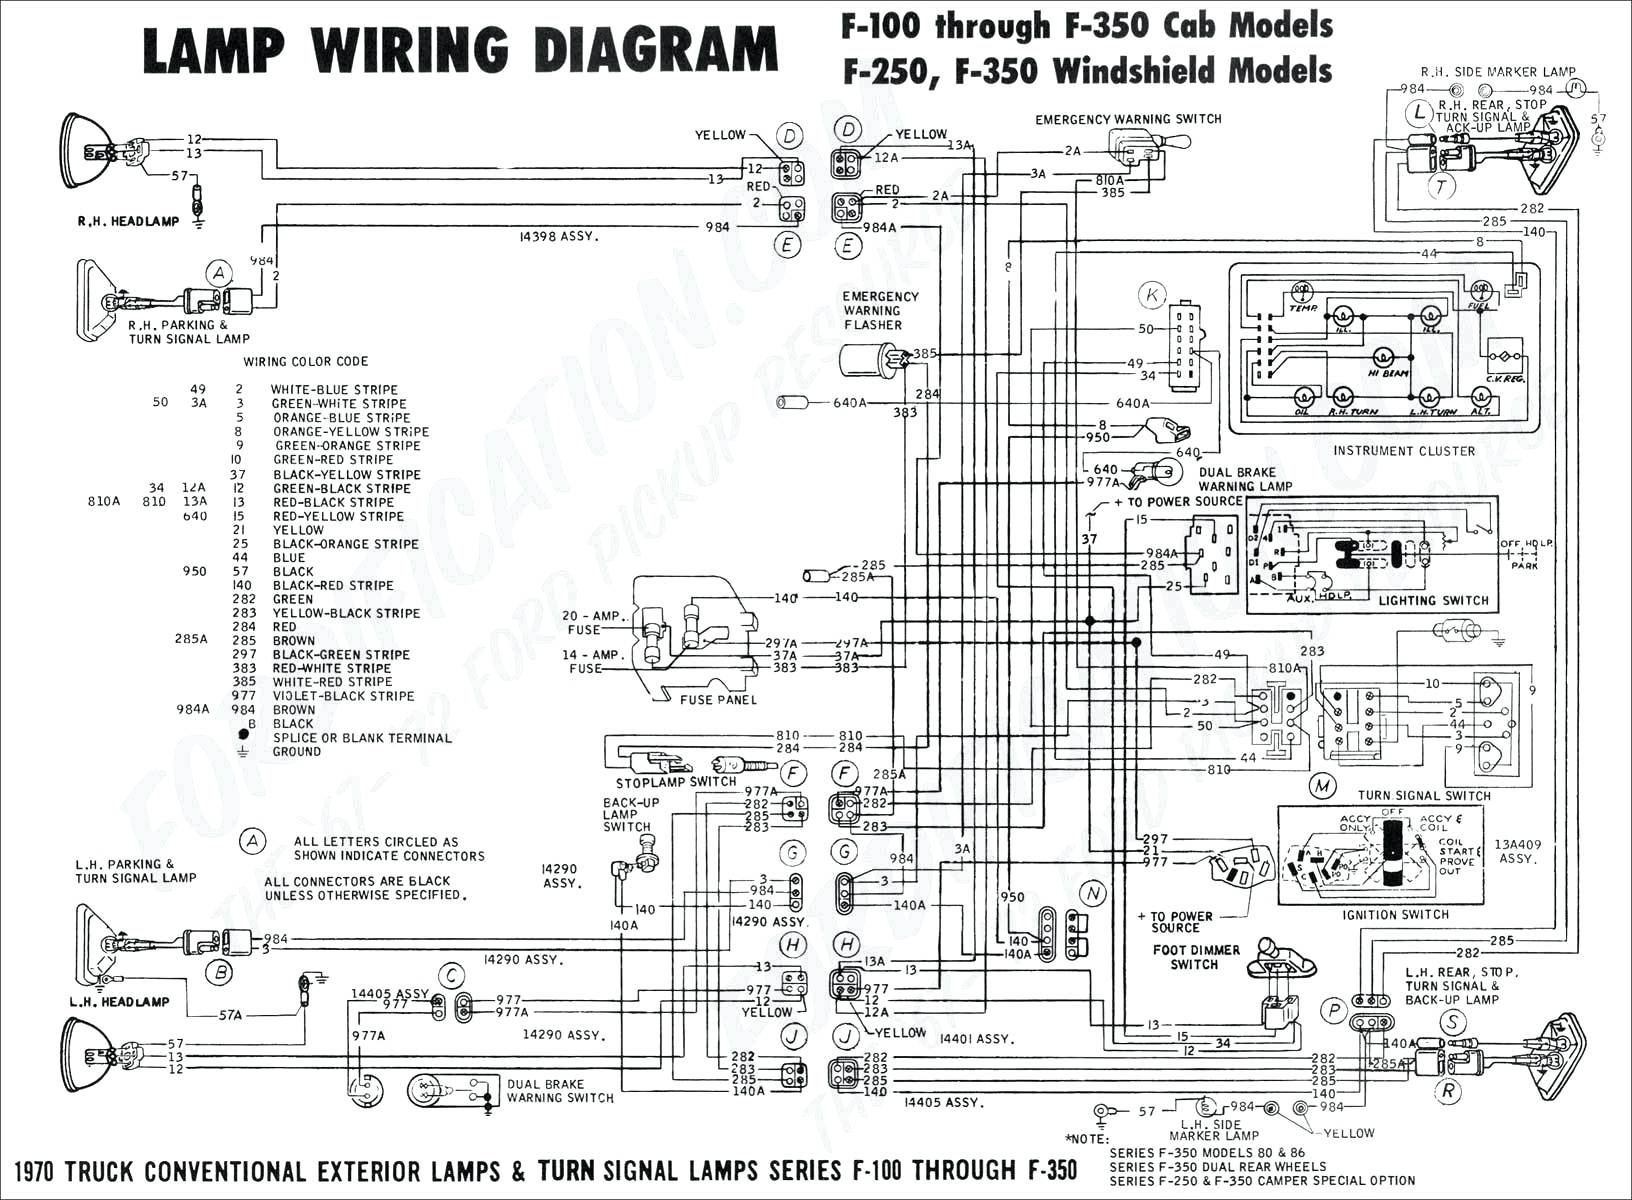 2000 Ford F550 Wiring - Wiring Diagram Information Ford F Trailer Wiring Diagram on